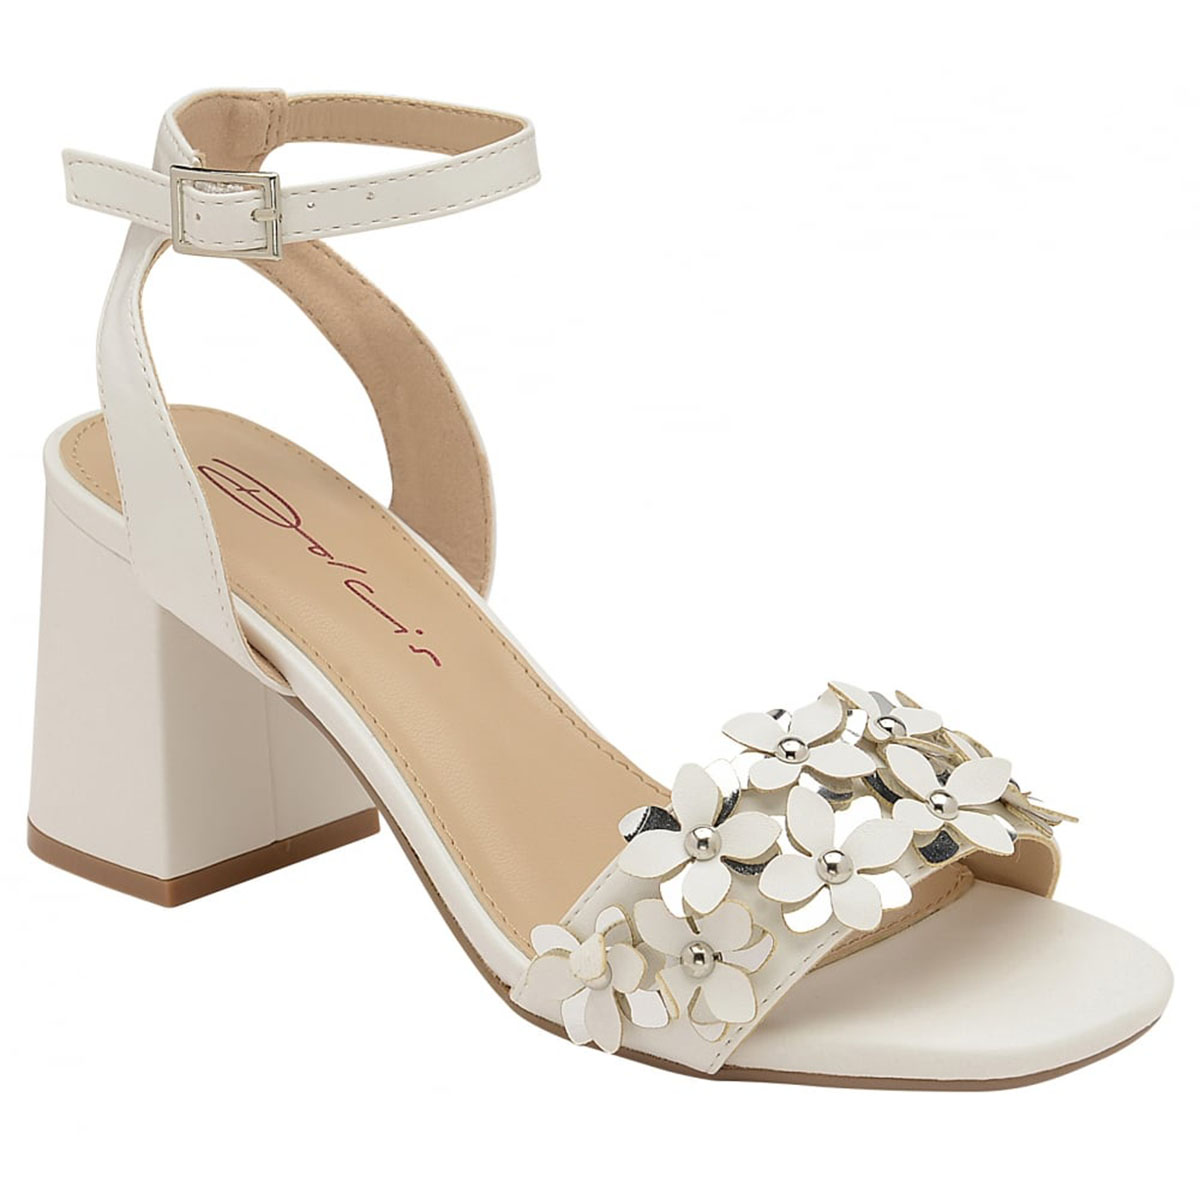 1392d6cb7e8b Item Details - LADIES DOLCIS NIAMH WHITE BLOCK HEEL ANKLE PEEP-TOE SANDALS  STRAPPY SHOES UK 3-8